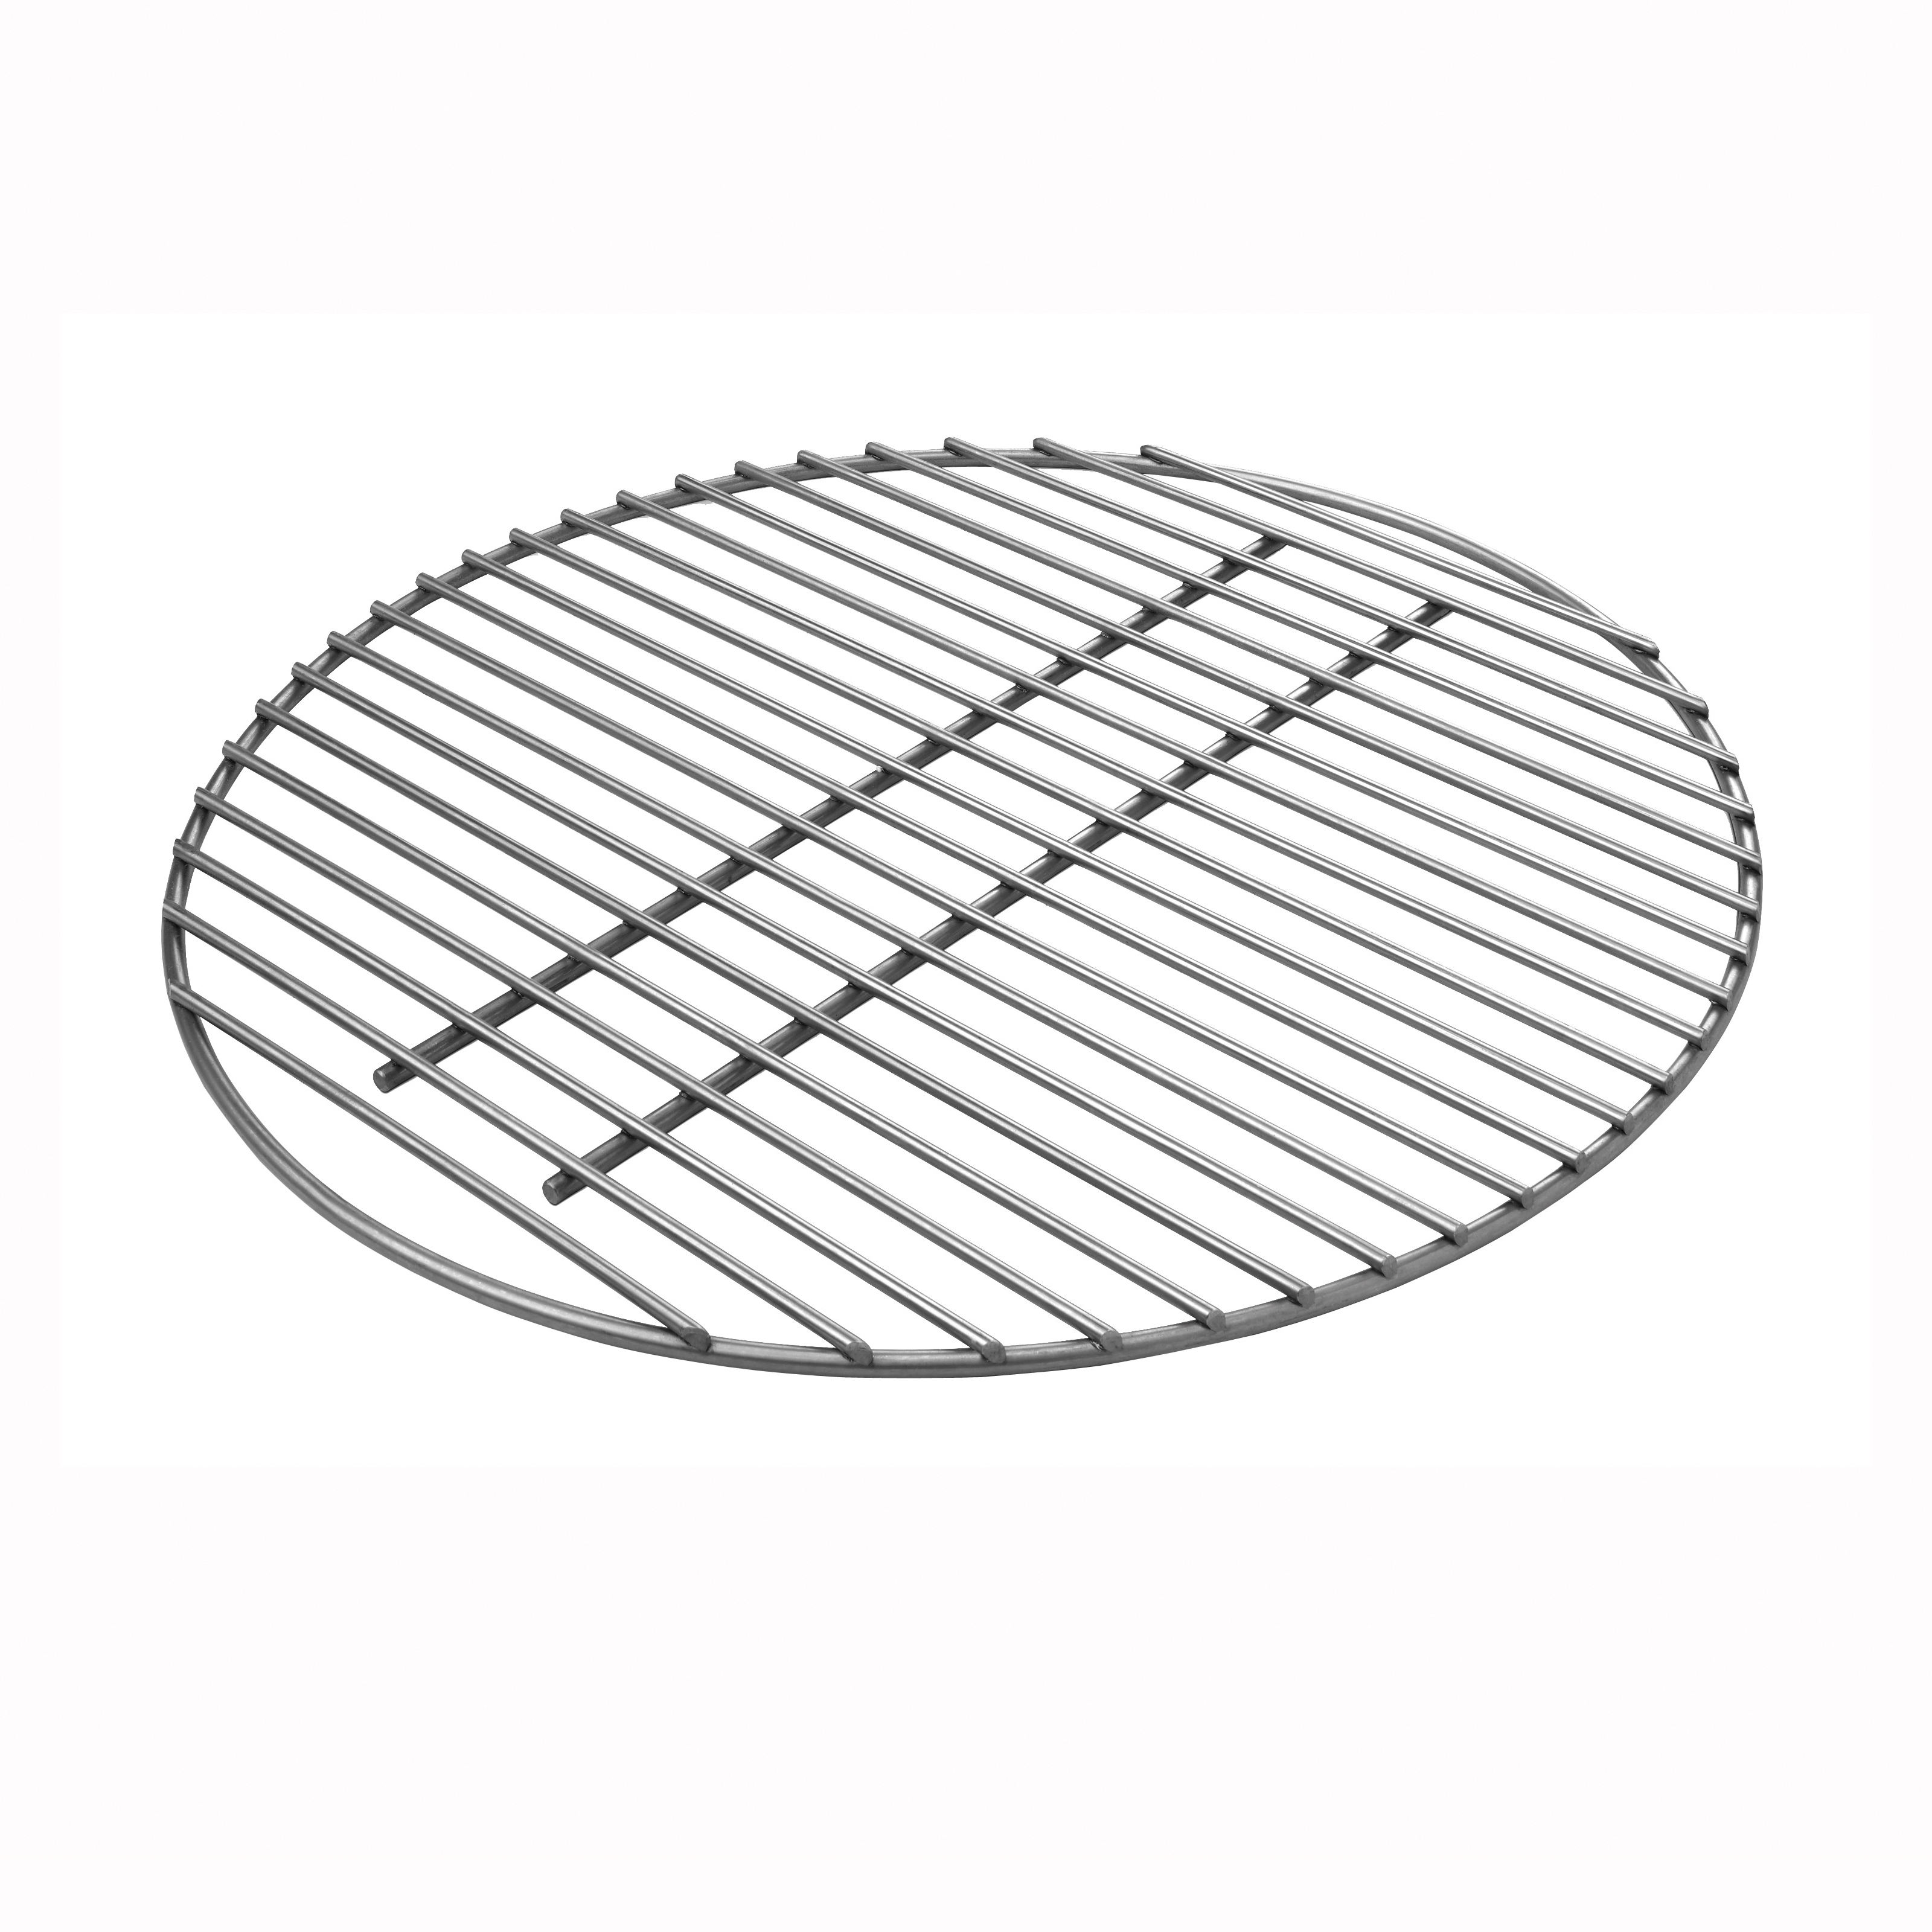 Picture of Weber 7441 Charcoal Grate, 43.18 in L, 43.18 in W, Steel, Plated